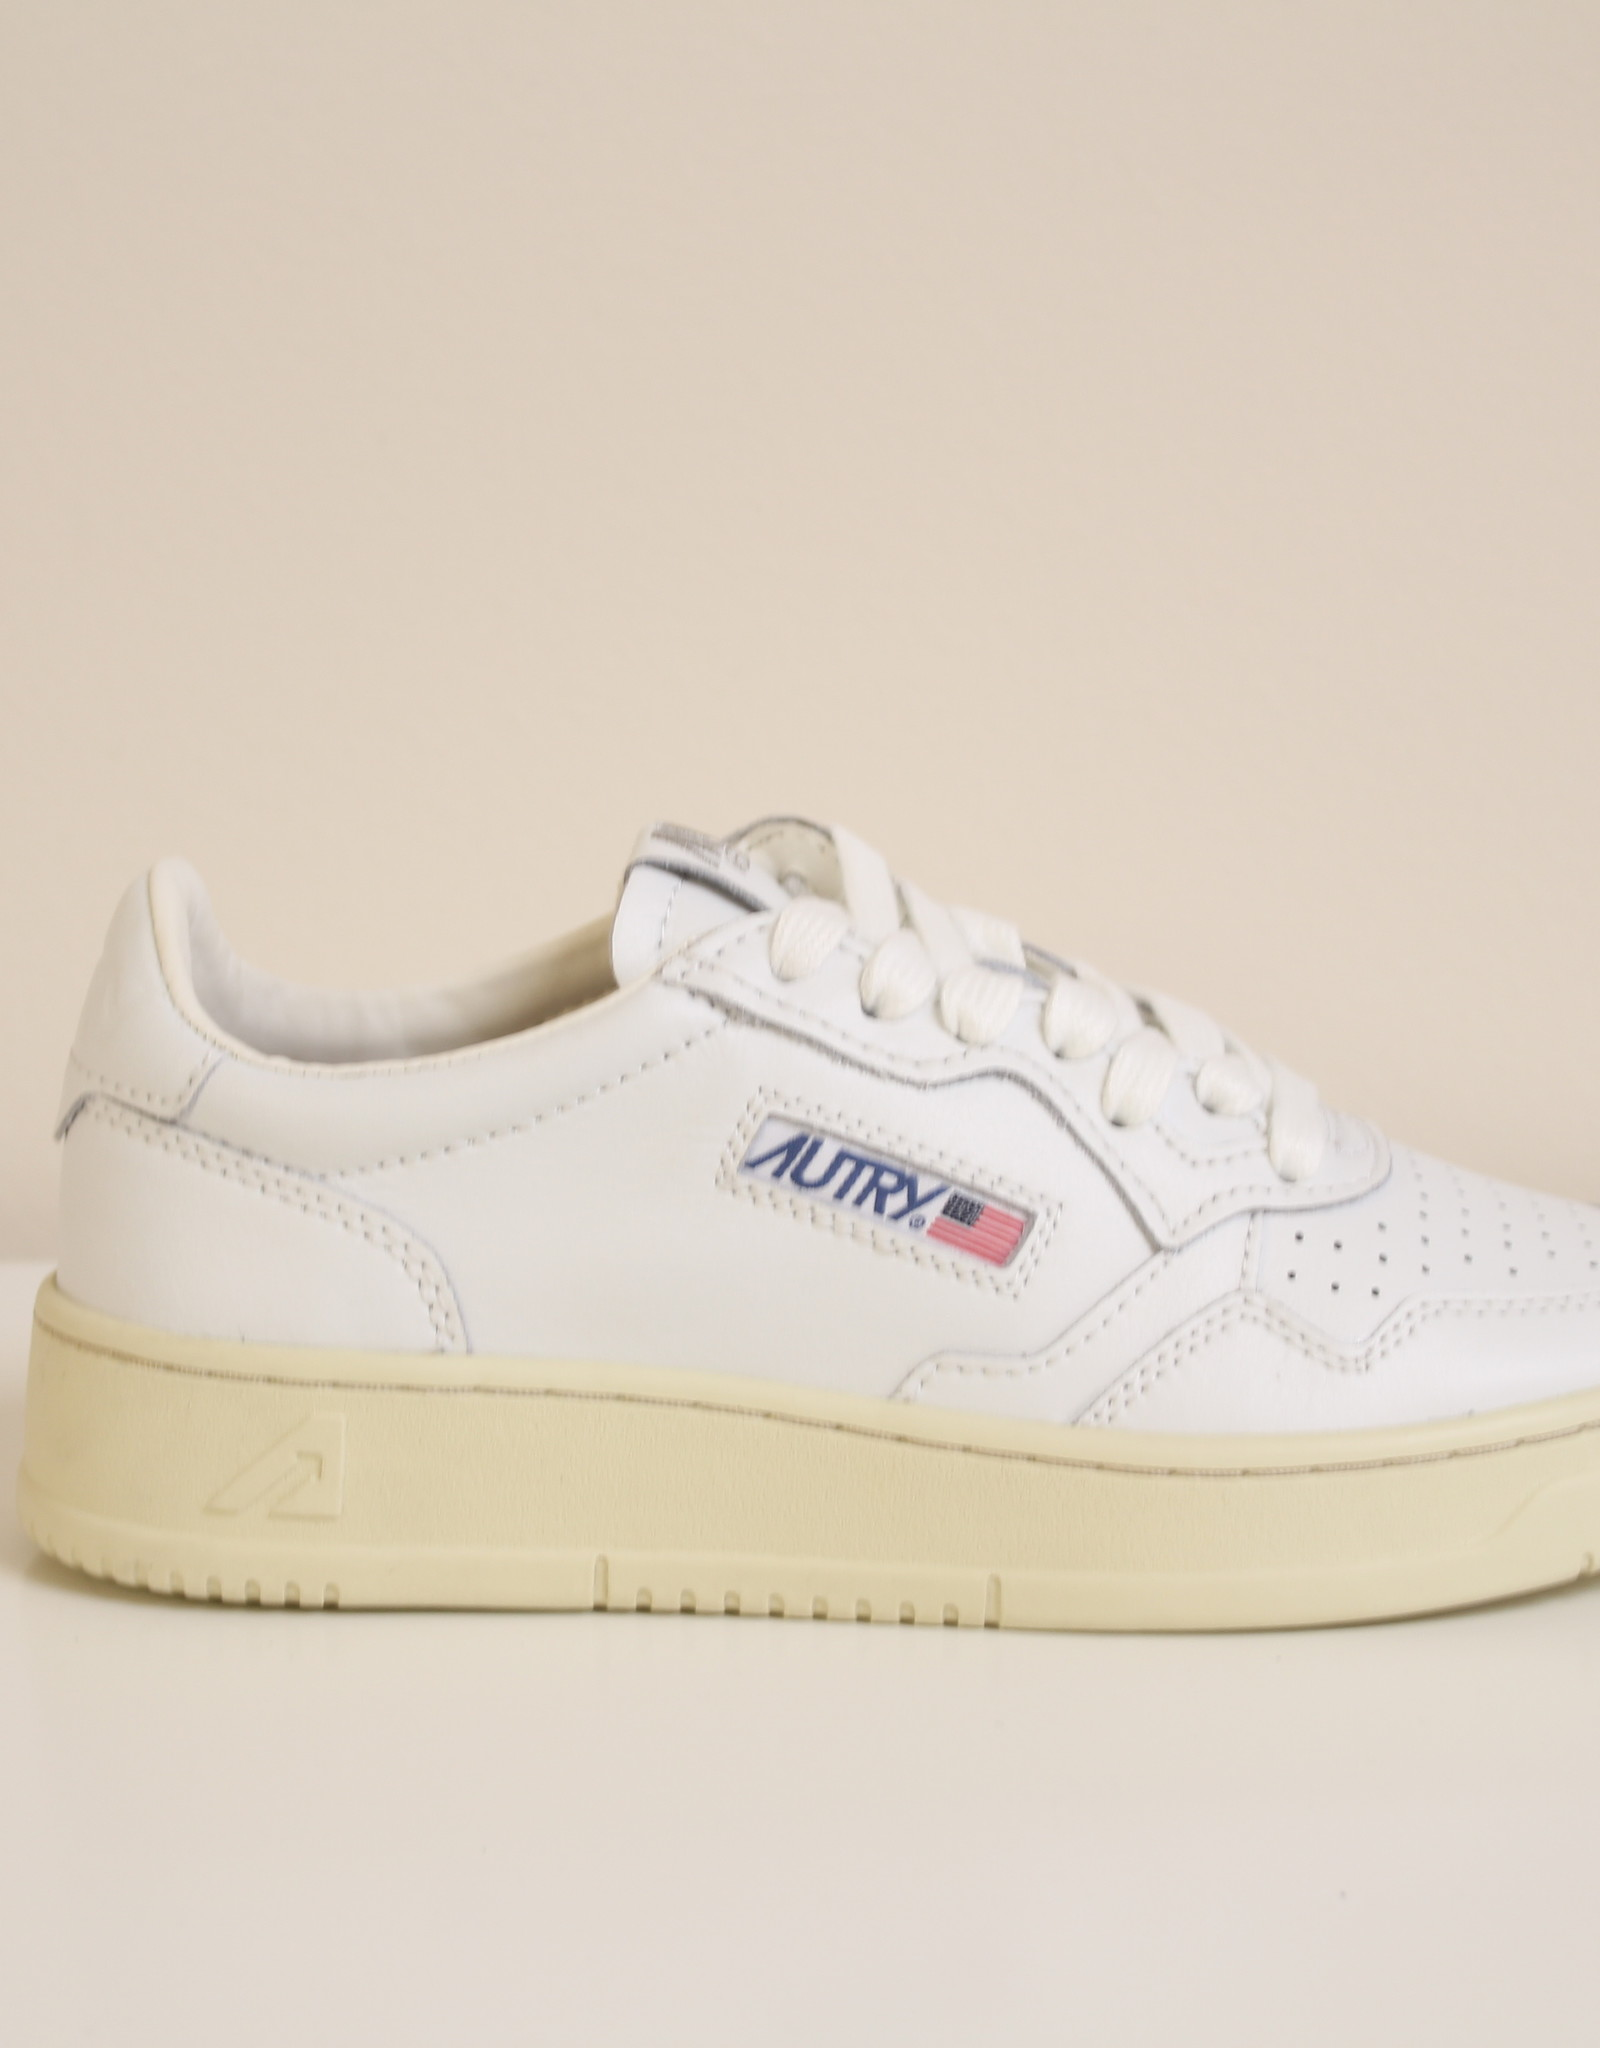 Autry AULWLL15 all leather white/white